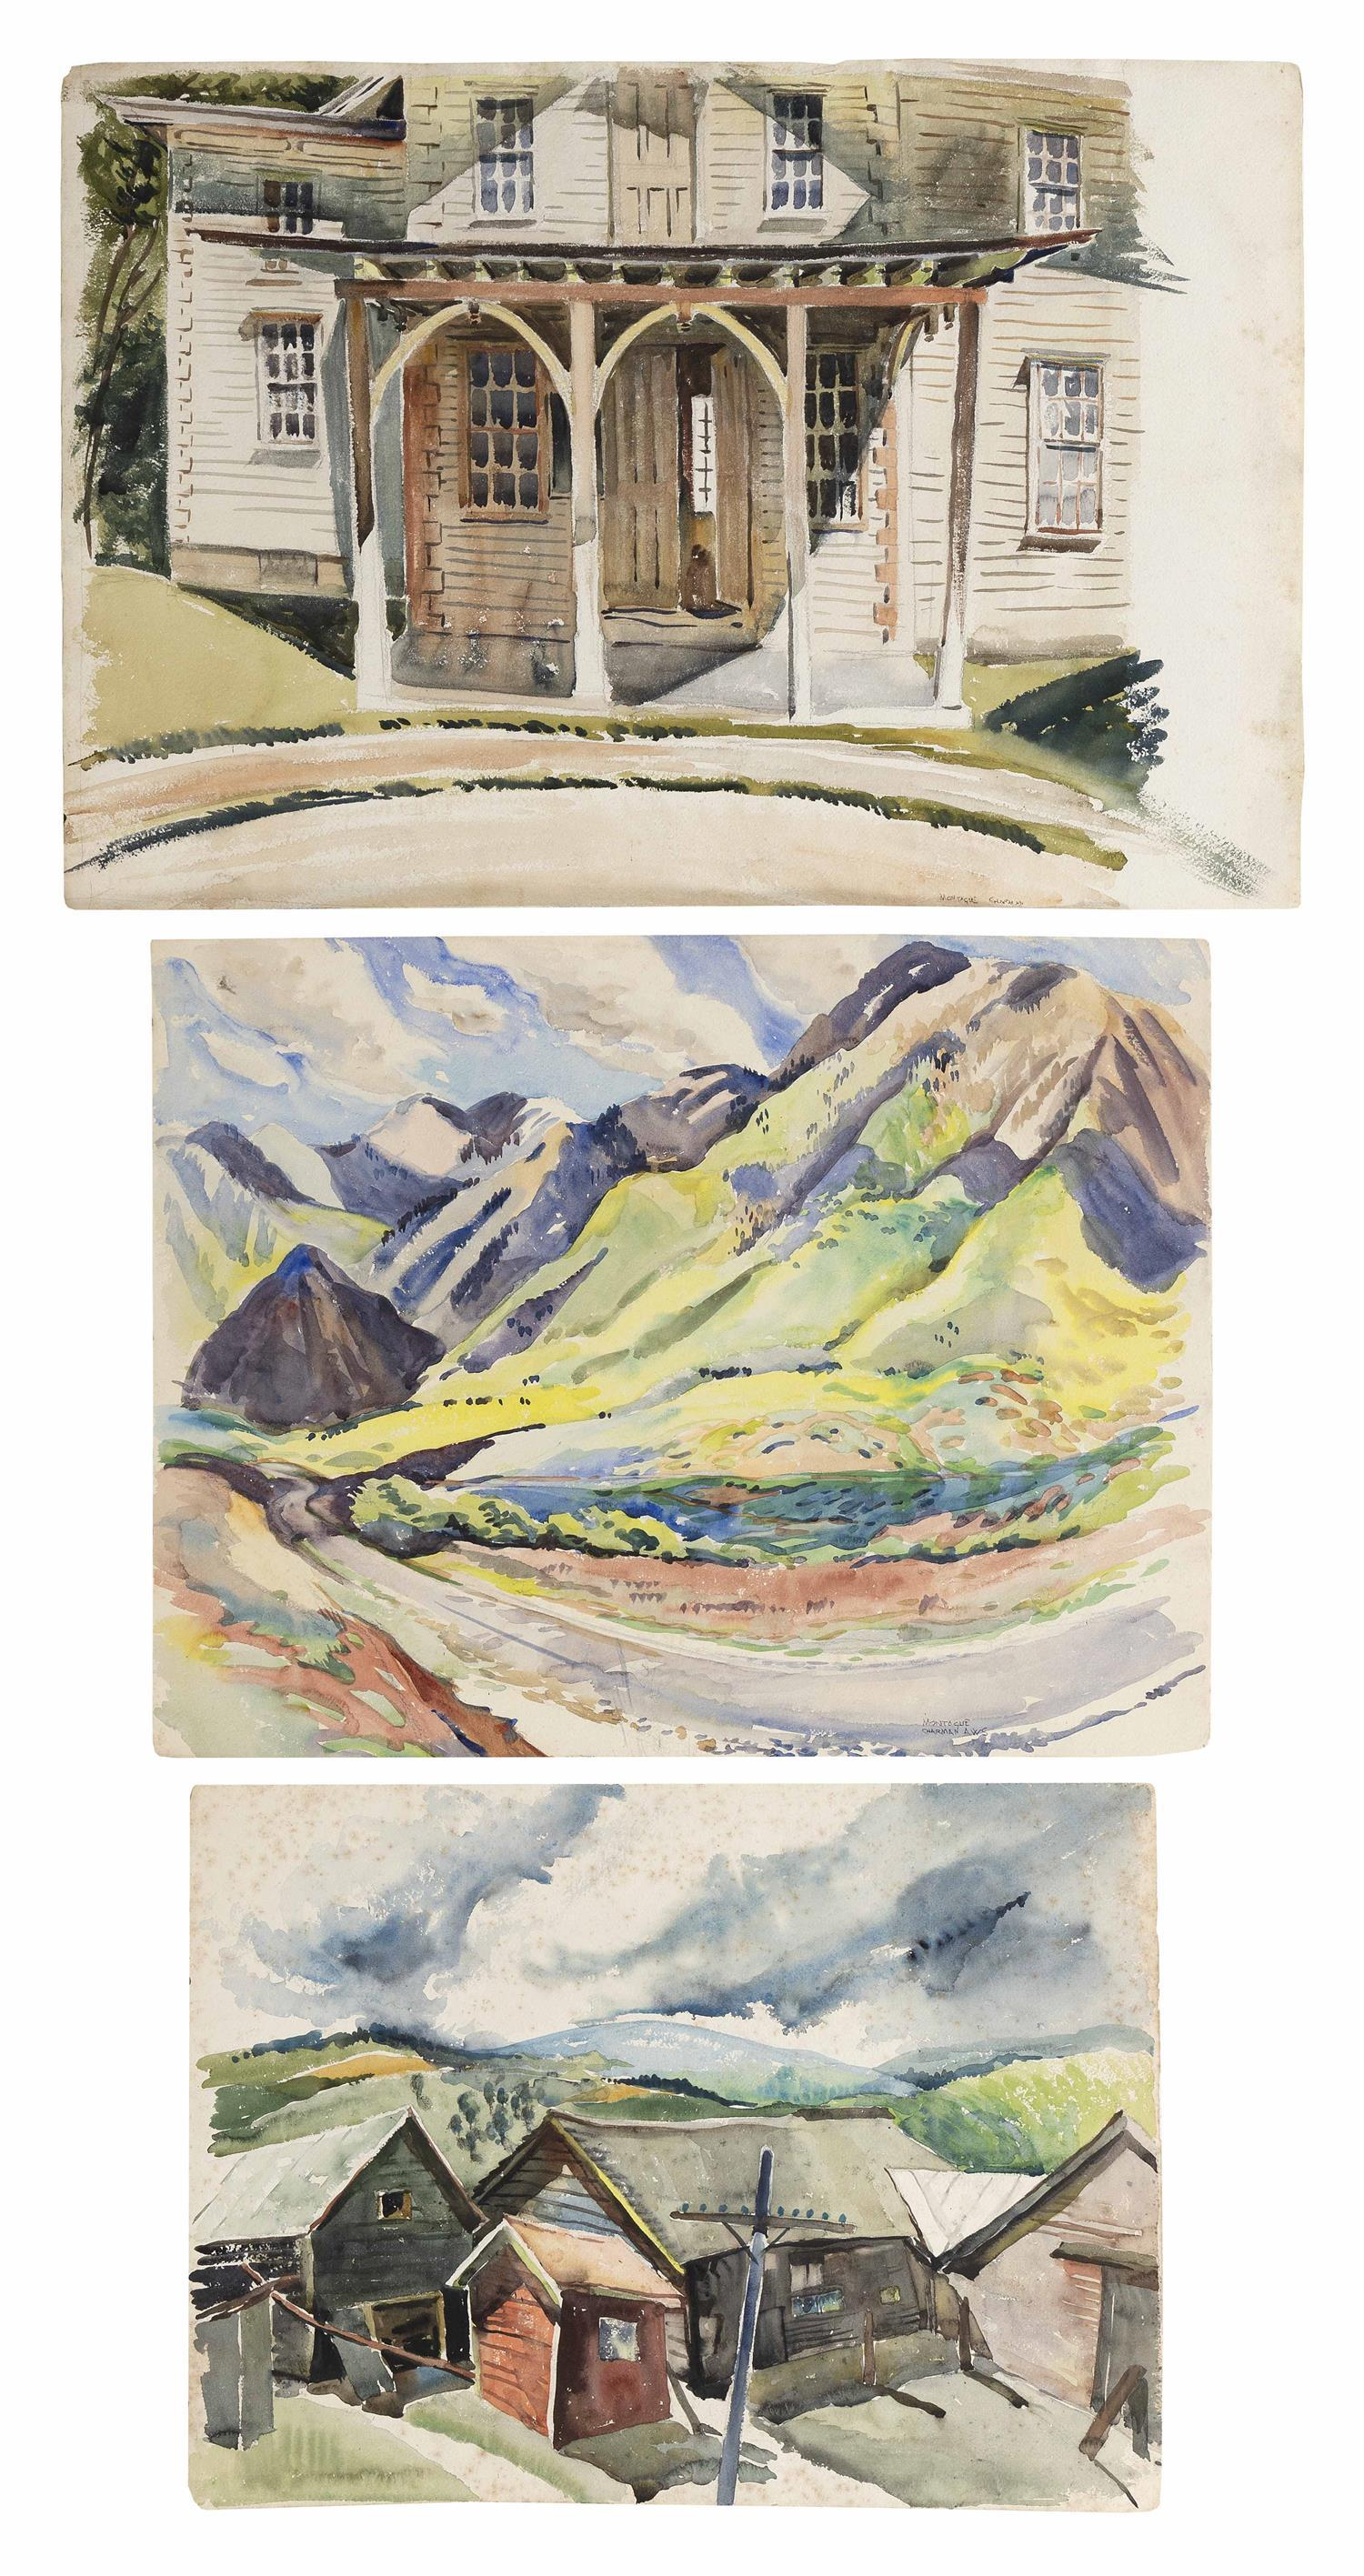 FREDERICK MONTAGUE CHARMAN, New York, 1894-1986, Three works: Two architectural and one landscape., Watercolors on paper, the larges...